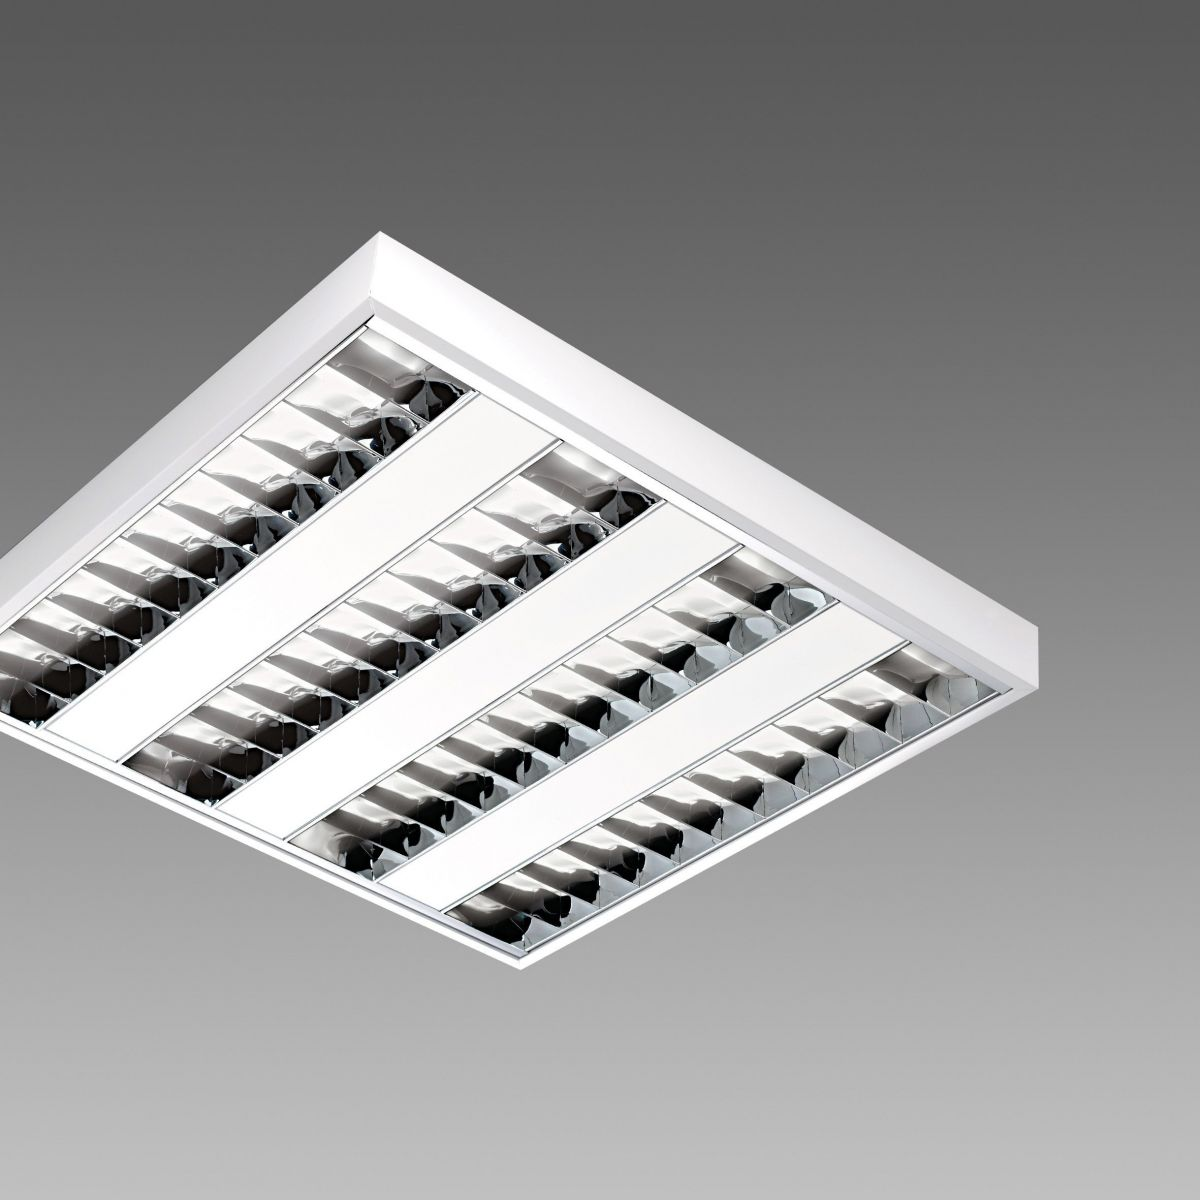 731 Minicomfort LED x4